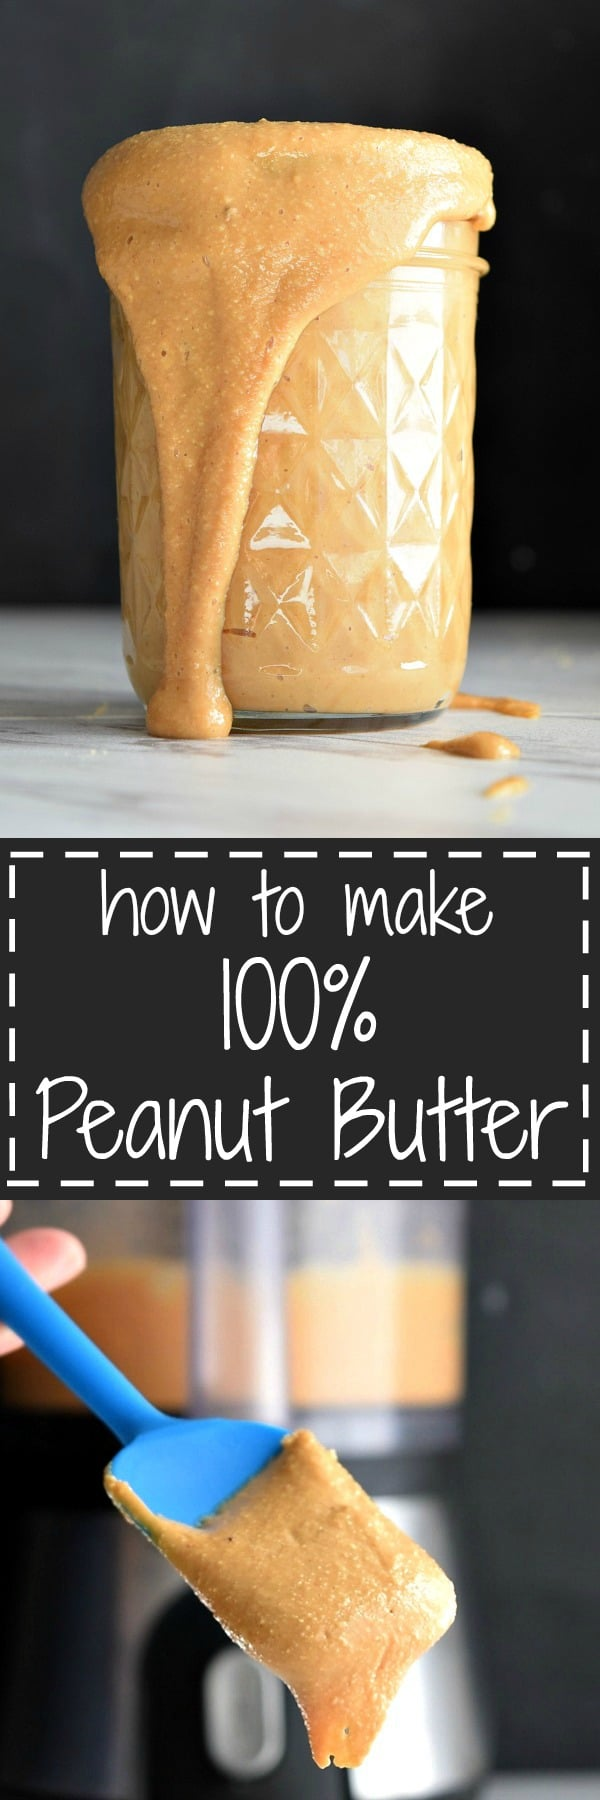 make peanut butter